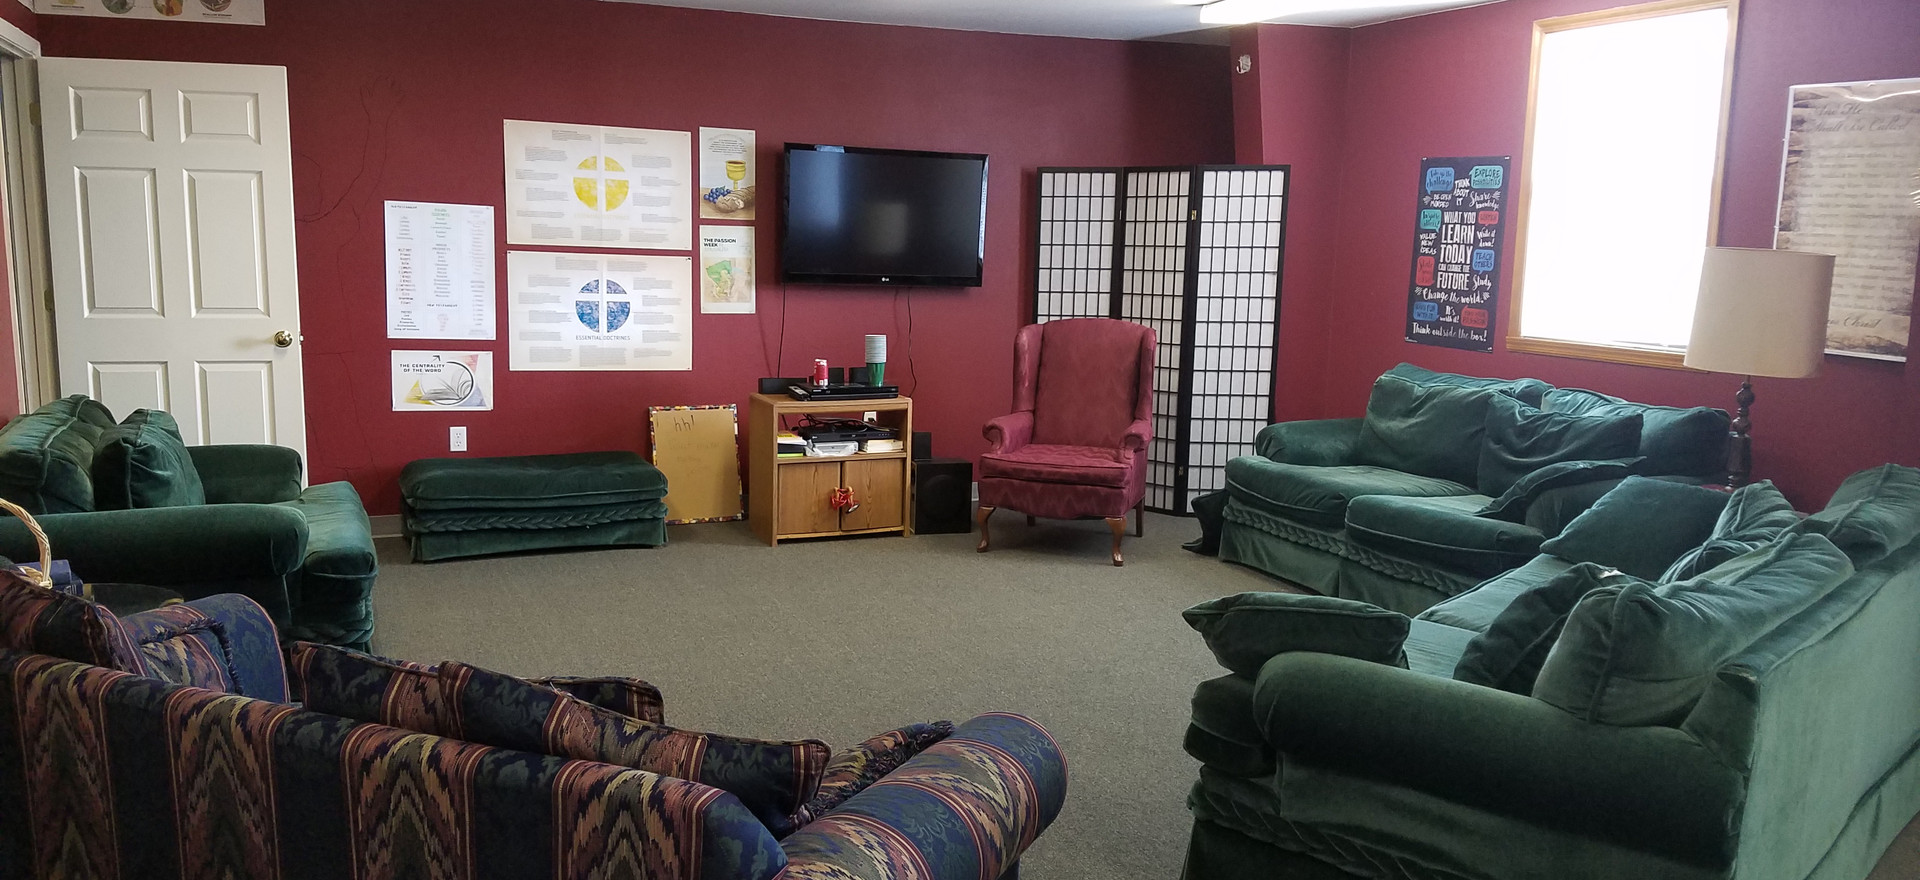 Youth Bible study room